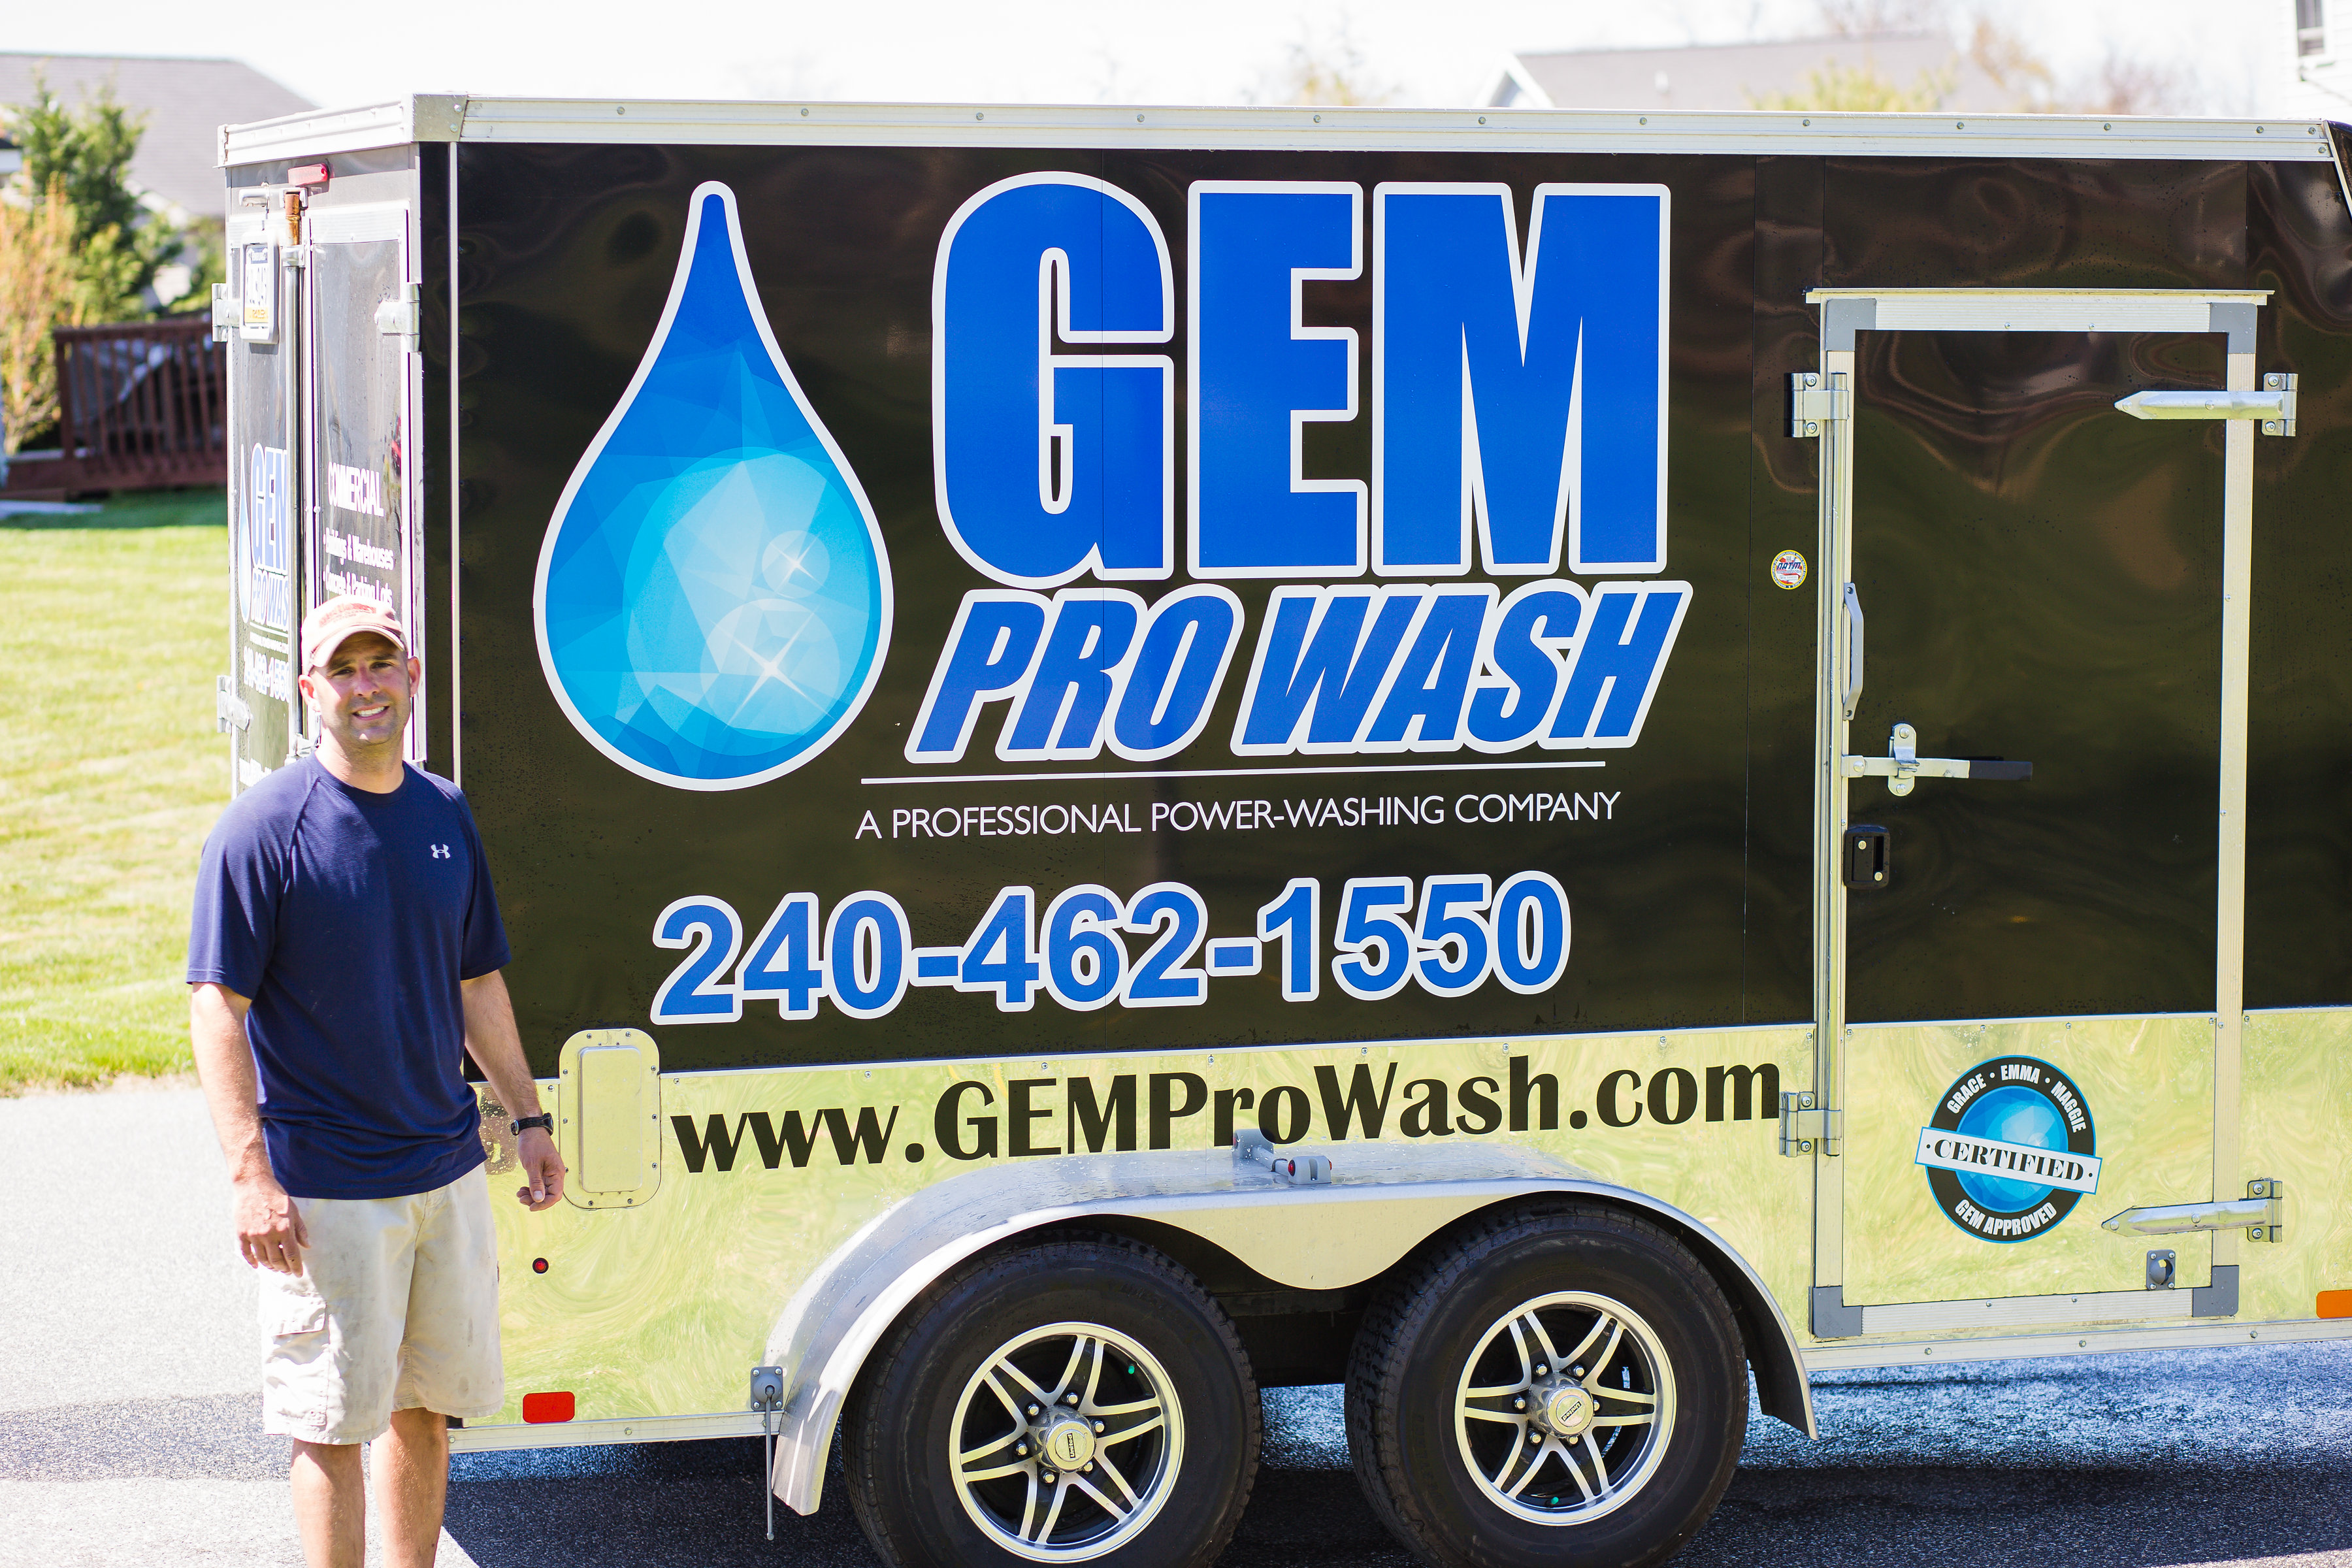 Gem Pro Wash | Mold Removal Company in Chambersburg PA